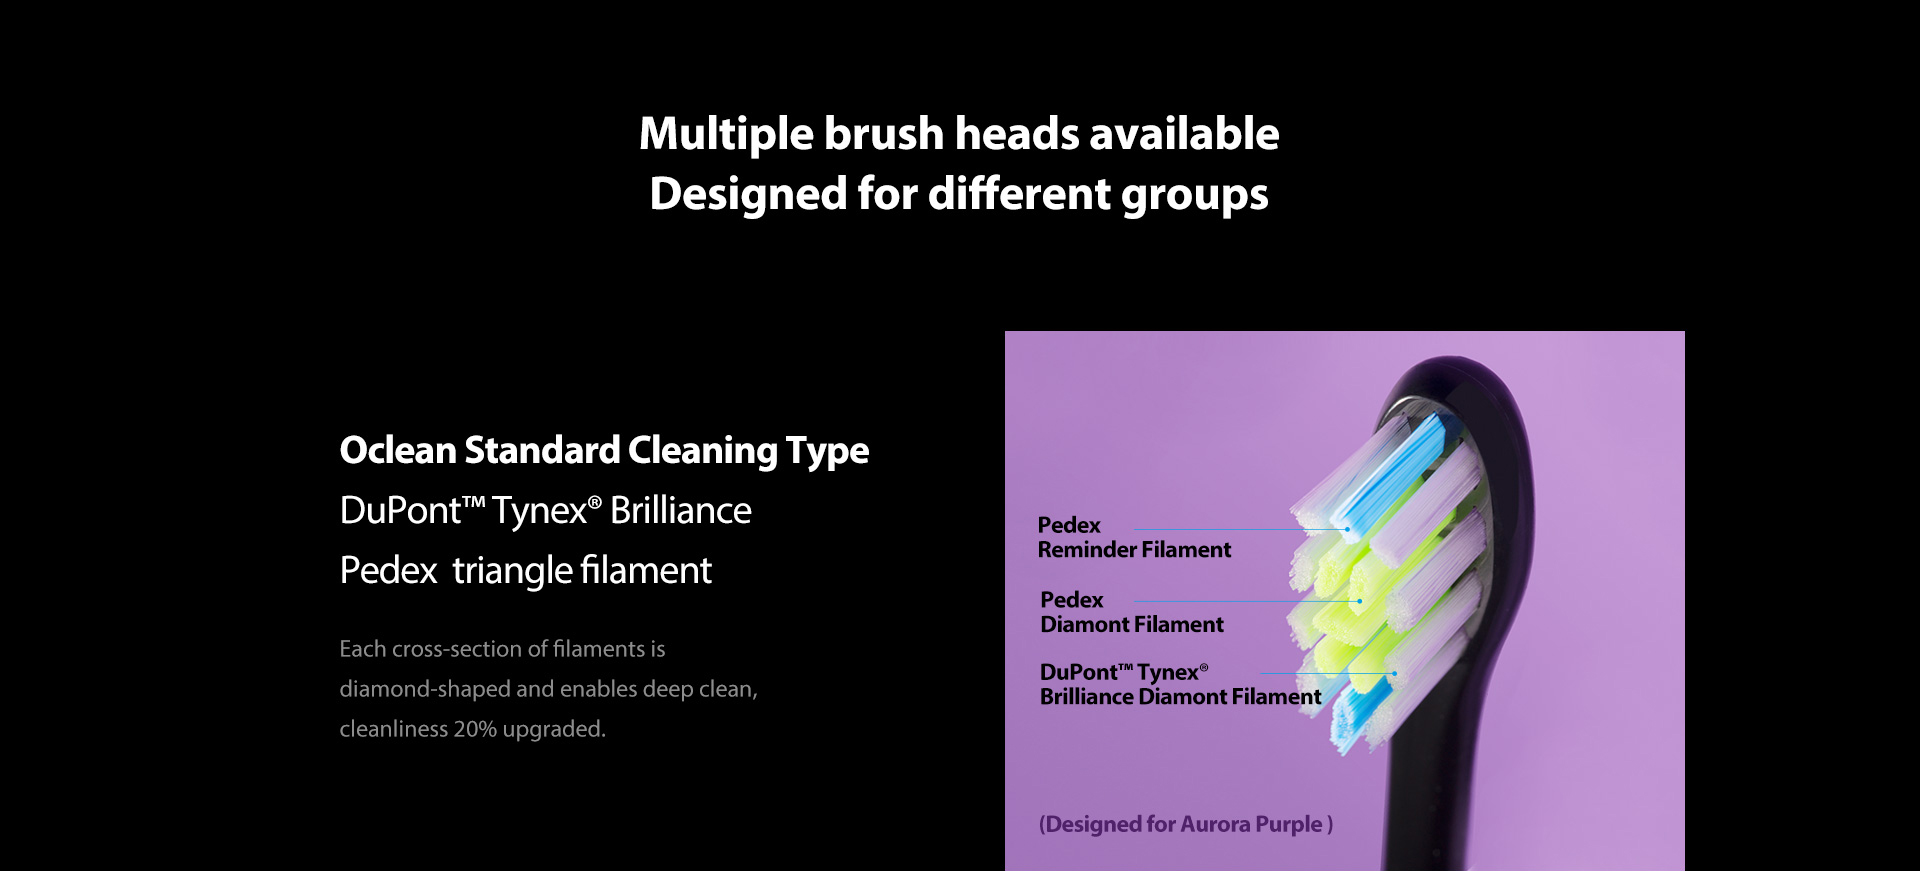 oclean standard cleaning type